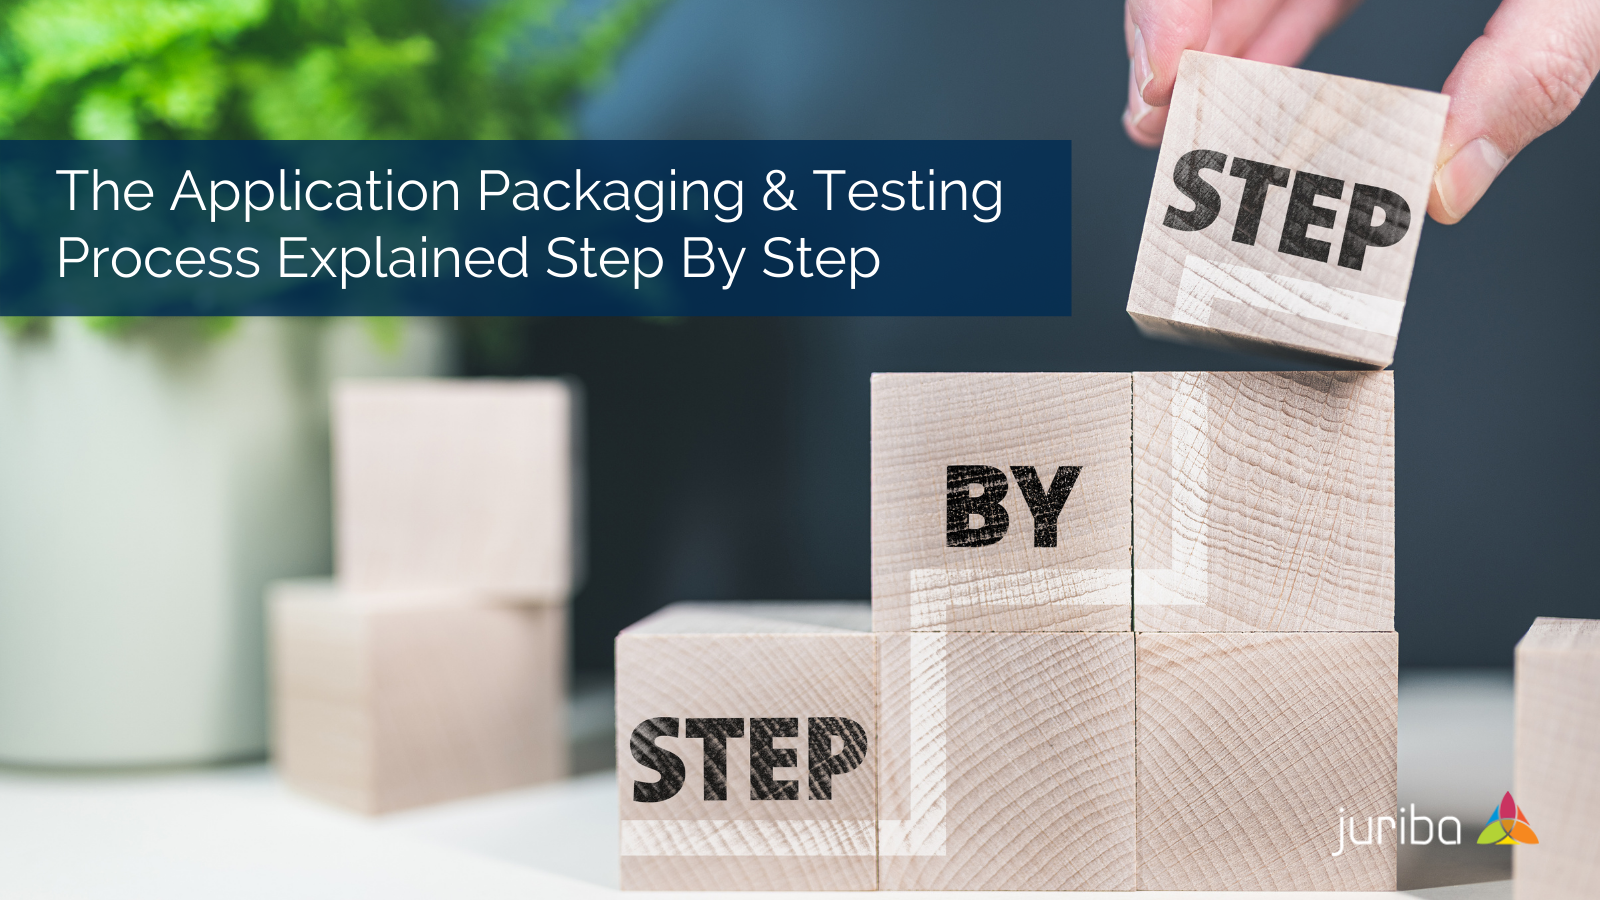 The Application Packaging & Testing Process Explained Step By Step